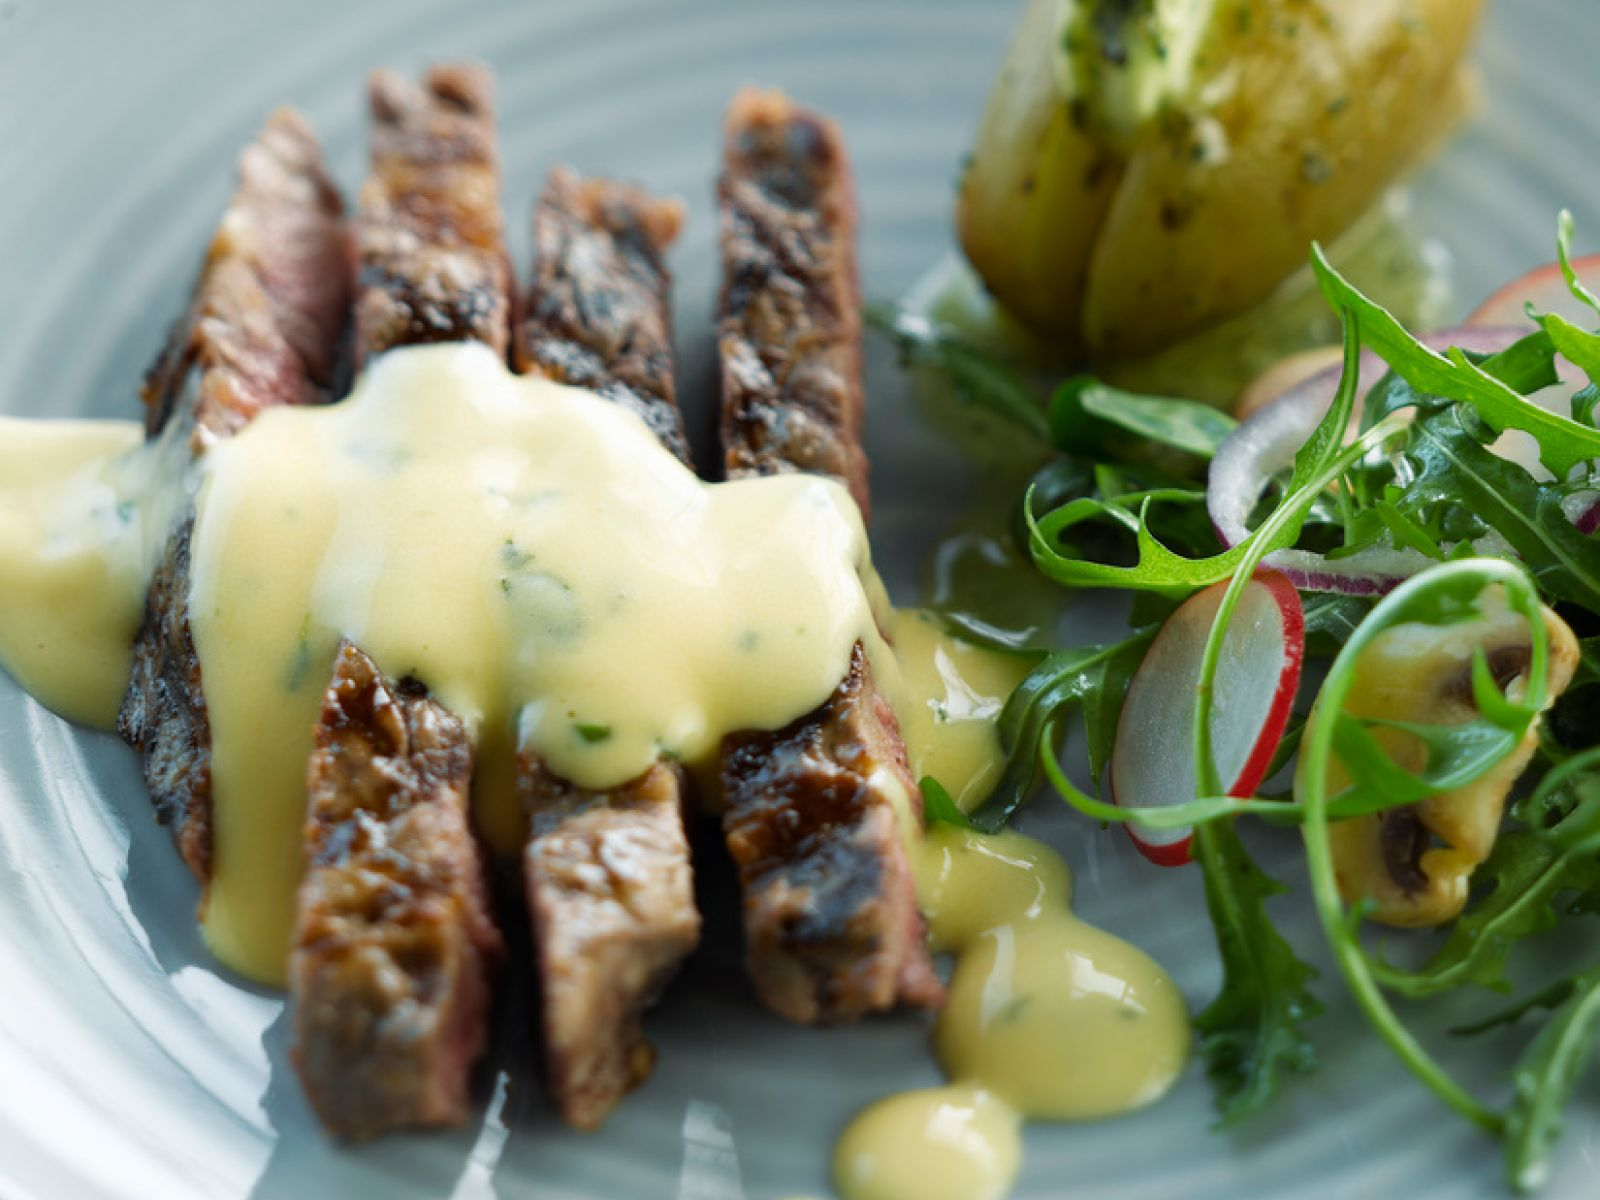 Grilled Steak With Bearnaise Sauce Herbed Potatoes And Salad Recipe Eat Smarter Usa,20 Gallon Aquarium Dimensions